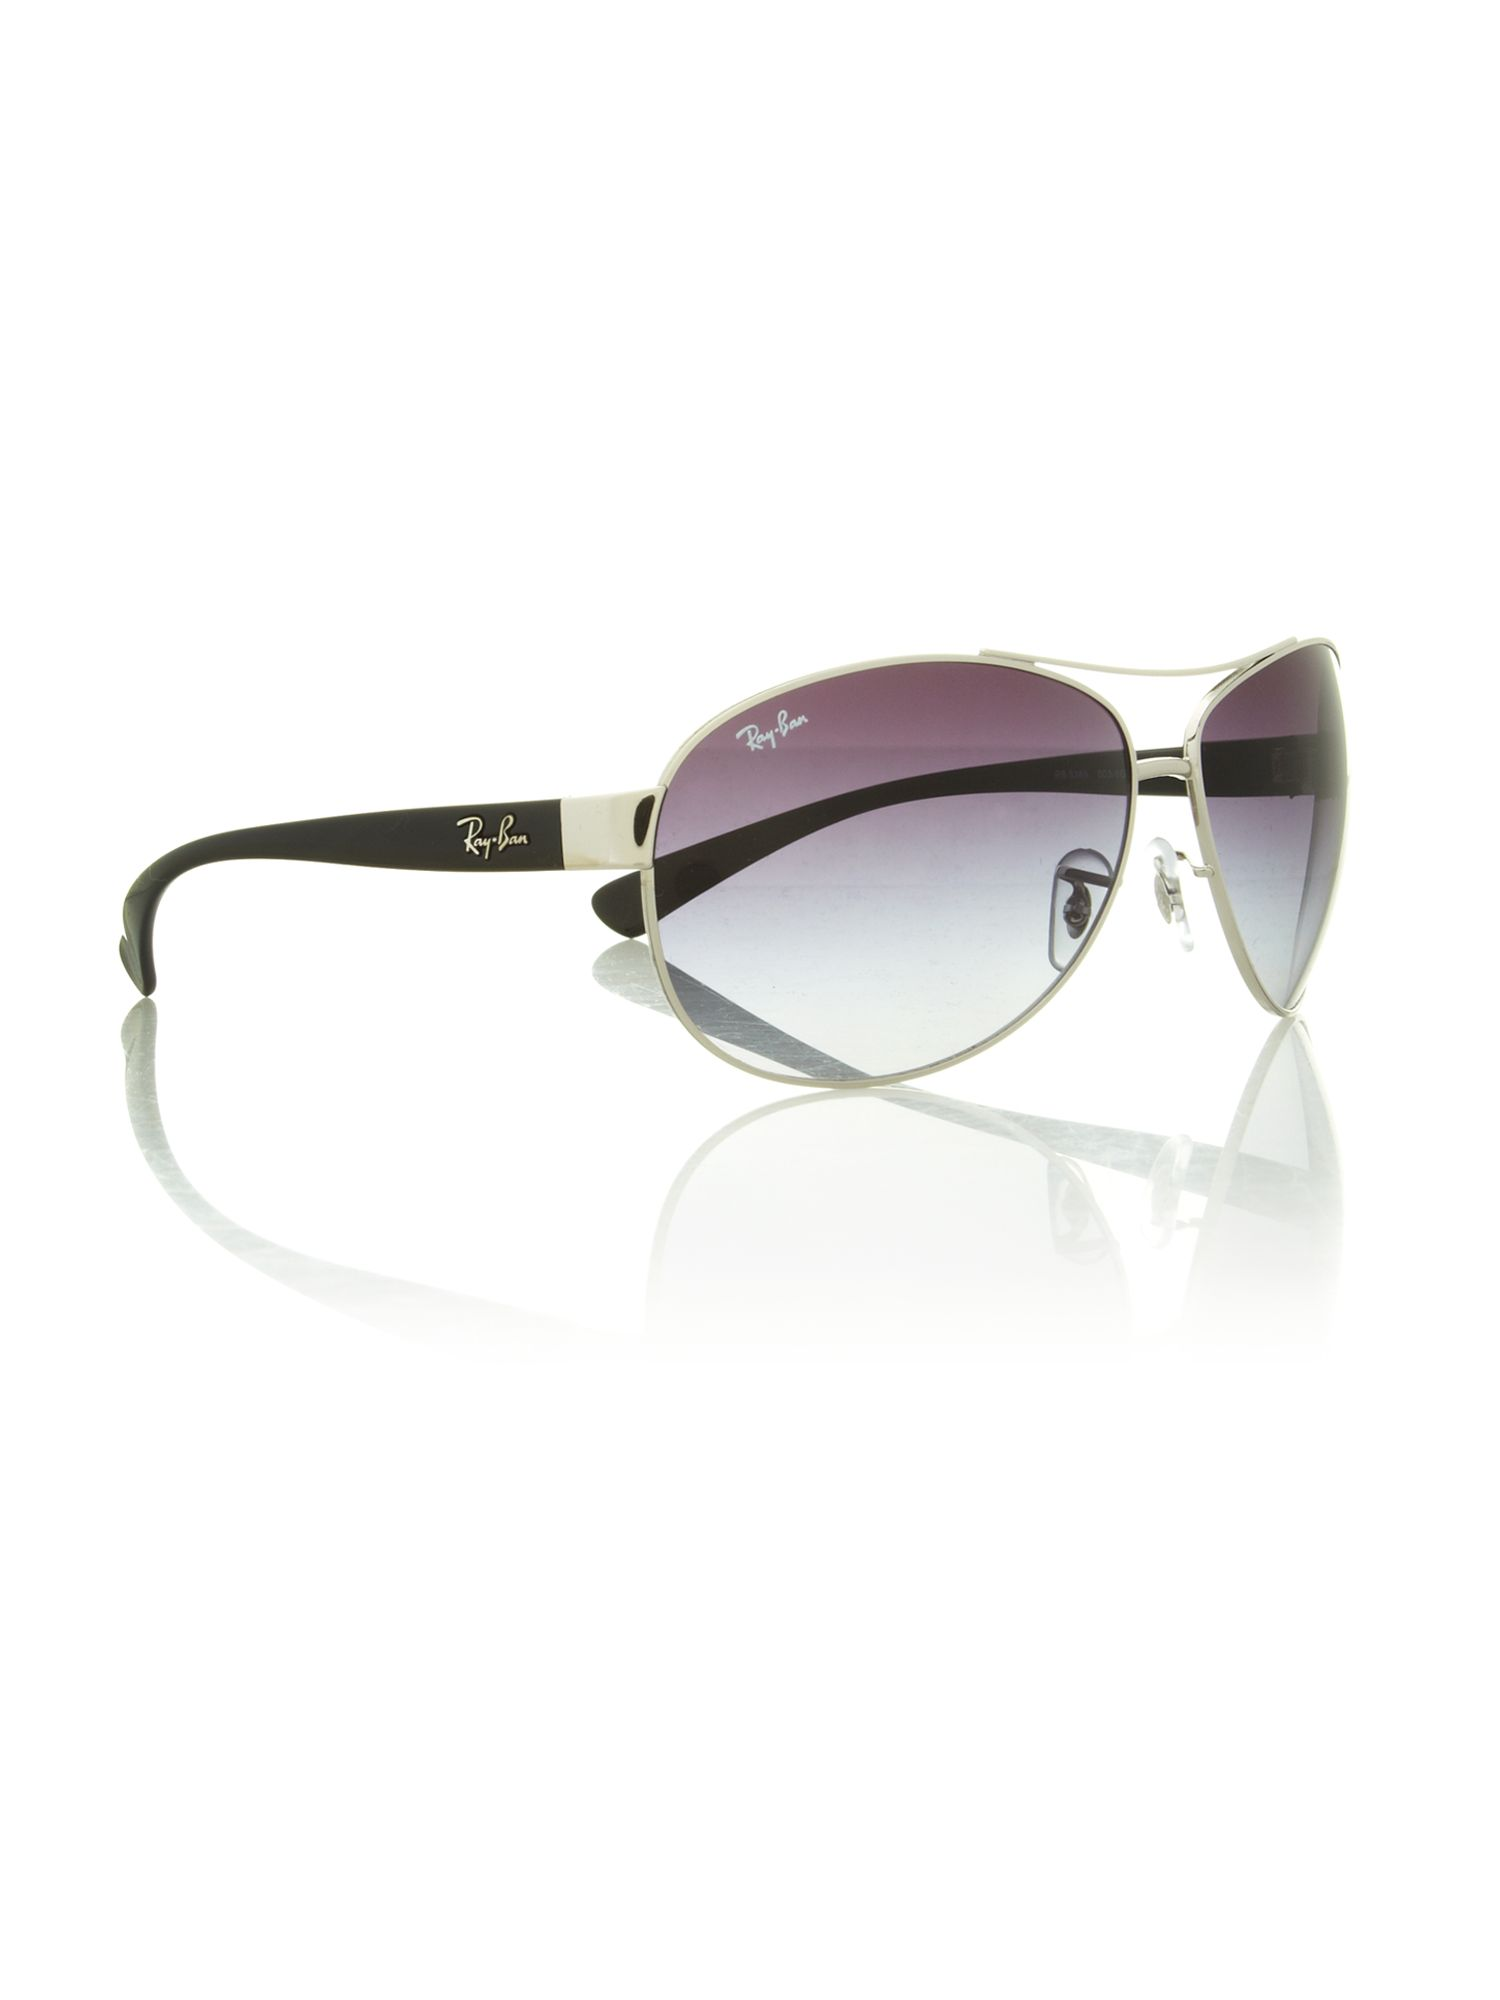 Ray Ban Rb3386 Metal Frame Sunglasses Our Pride Academy